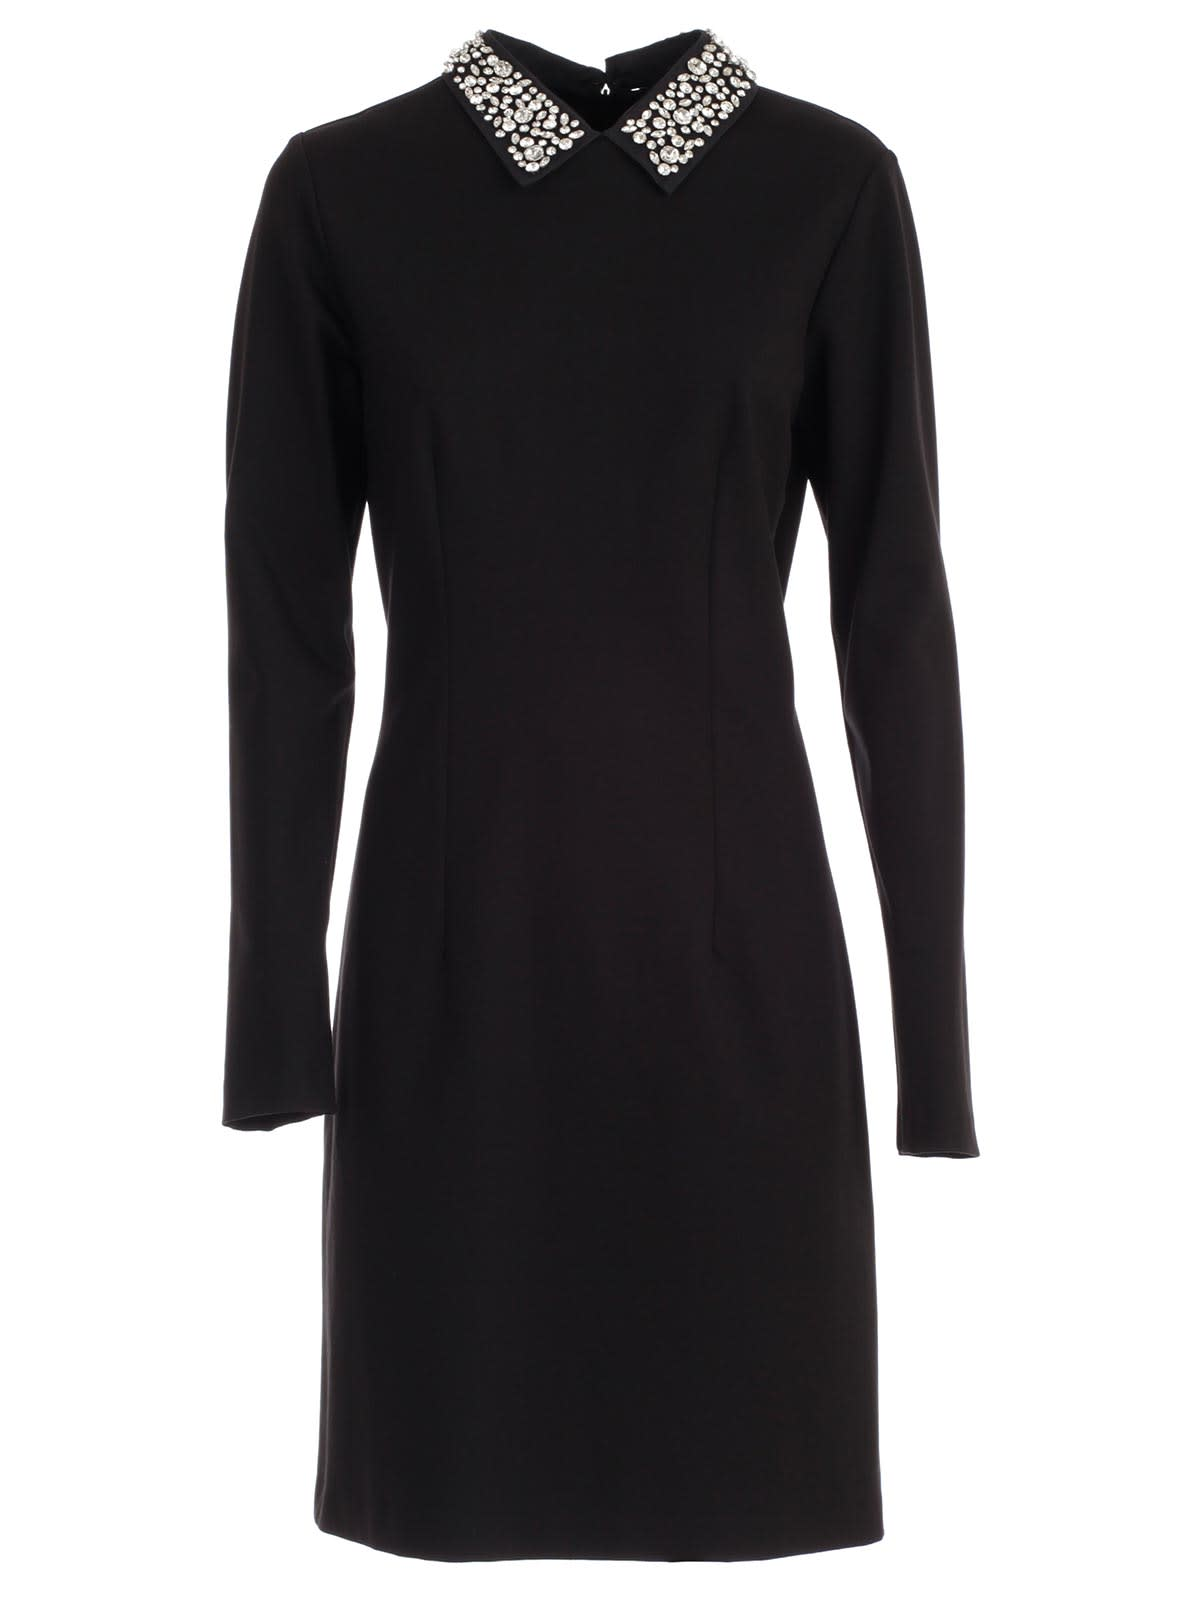 Be Blumarine Dress L & s Pencilswarovsky Collar